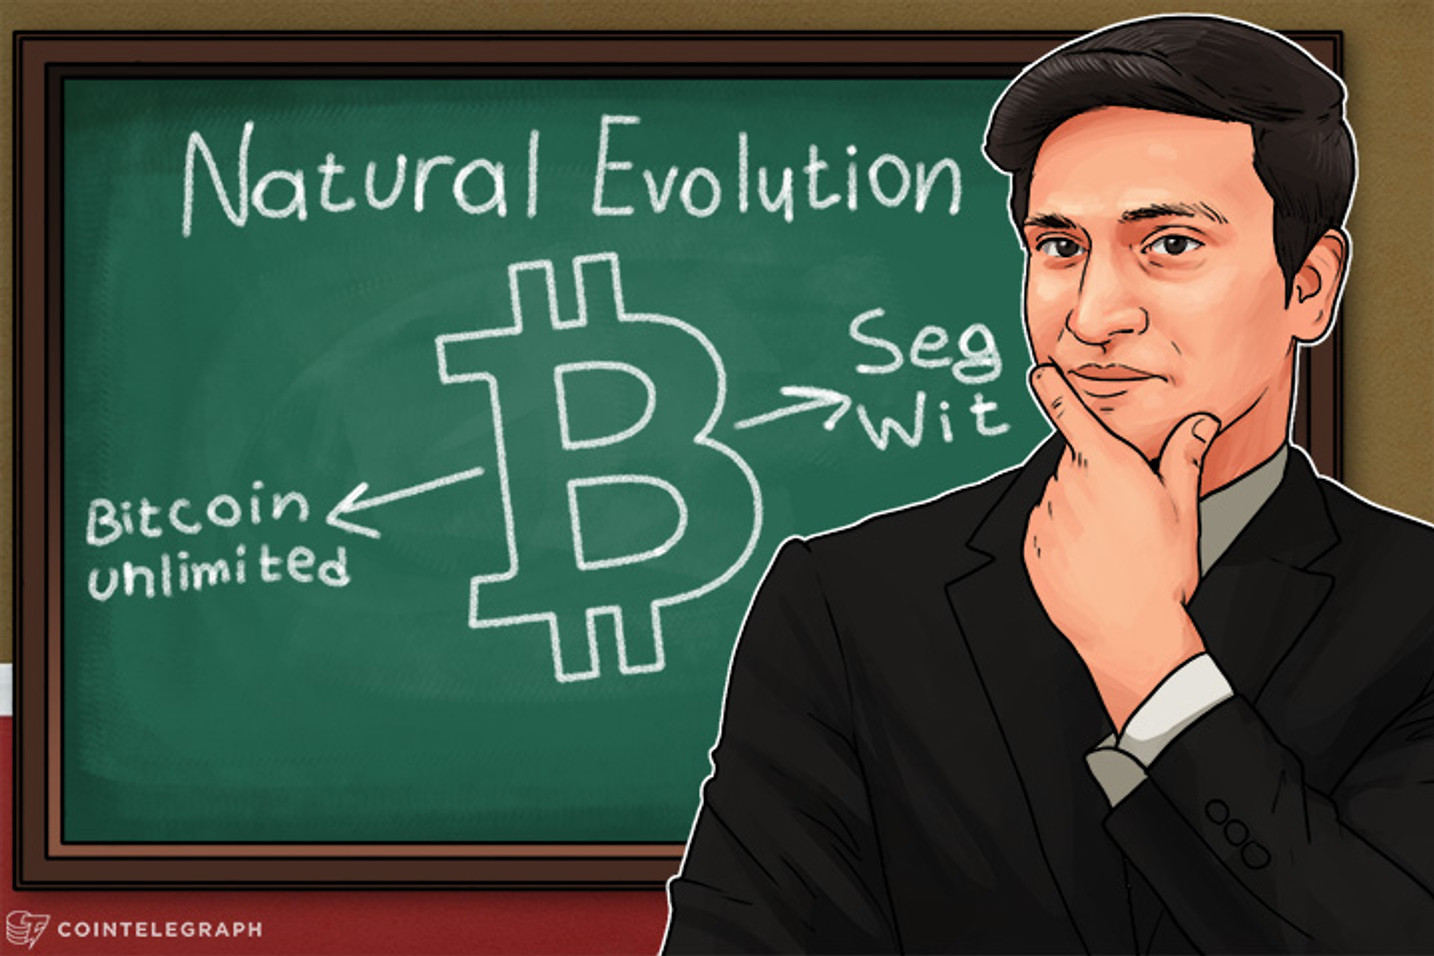 Bitcoin Price Resists Significant Crash Due To Natural Evolution: Cashaa's Gaurav